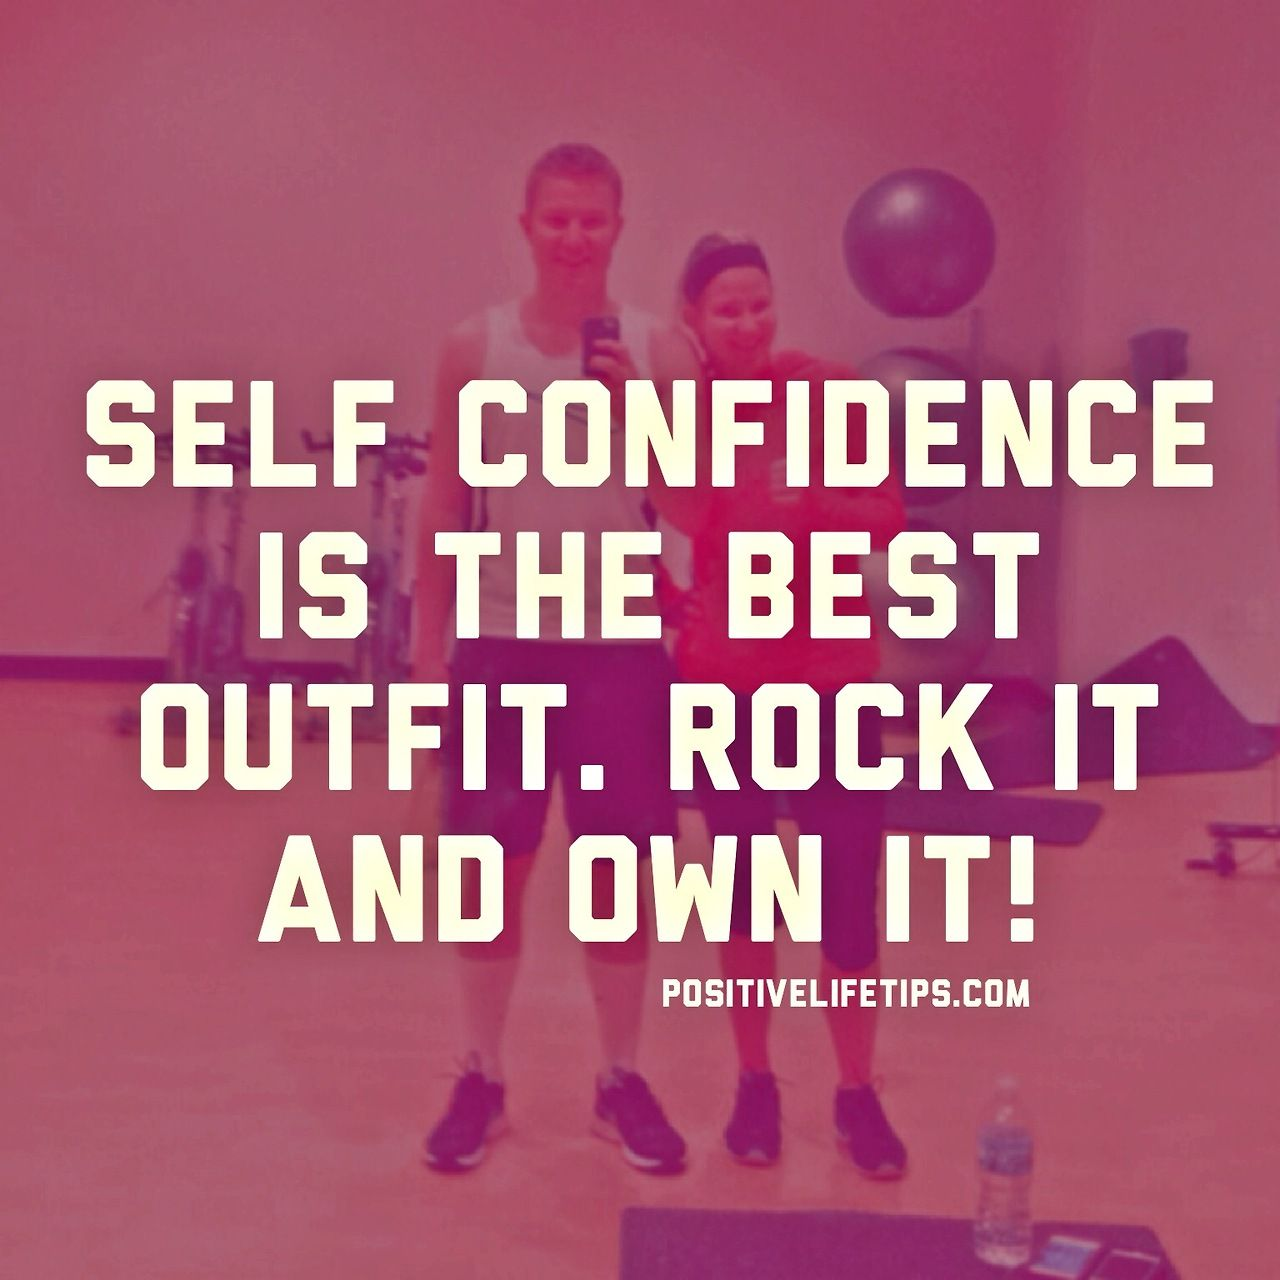 Life Changes Quotes Inspirational Self Confidence Is The Best Outfitrock It And Own It  Positive